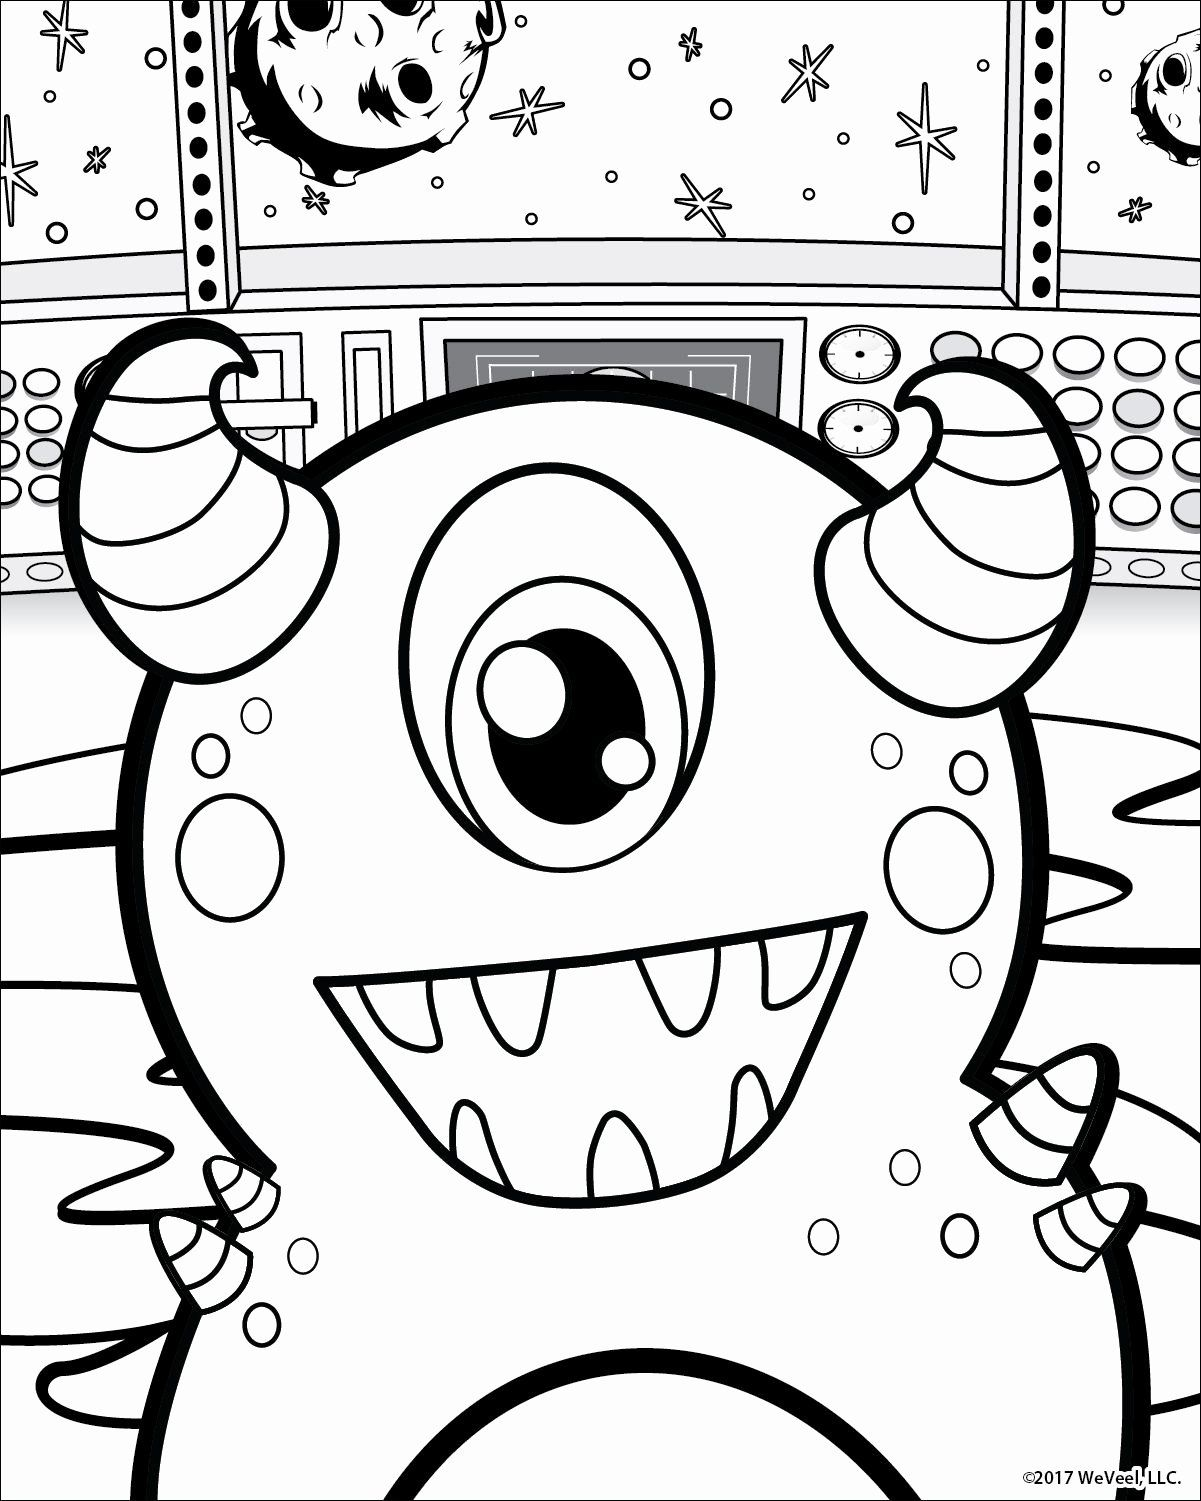 Spring Coloring Pages for Preschoolers in 2020 (With ...